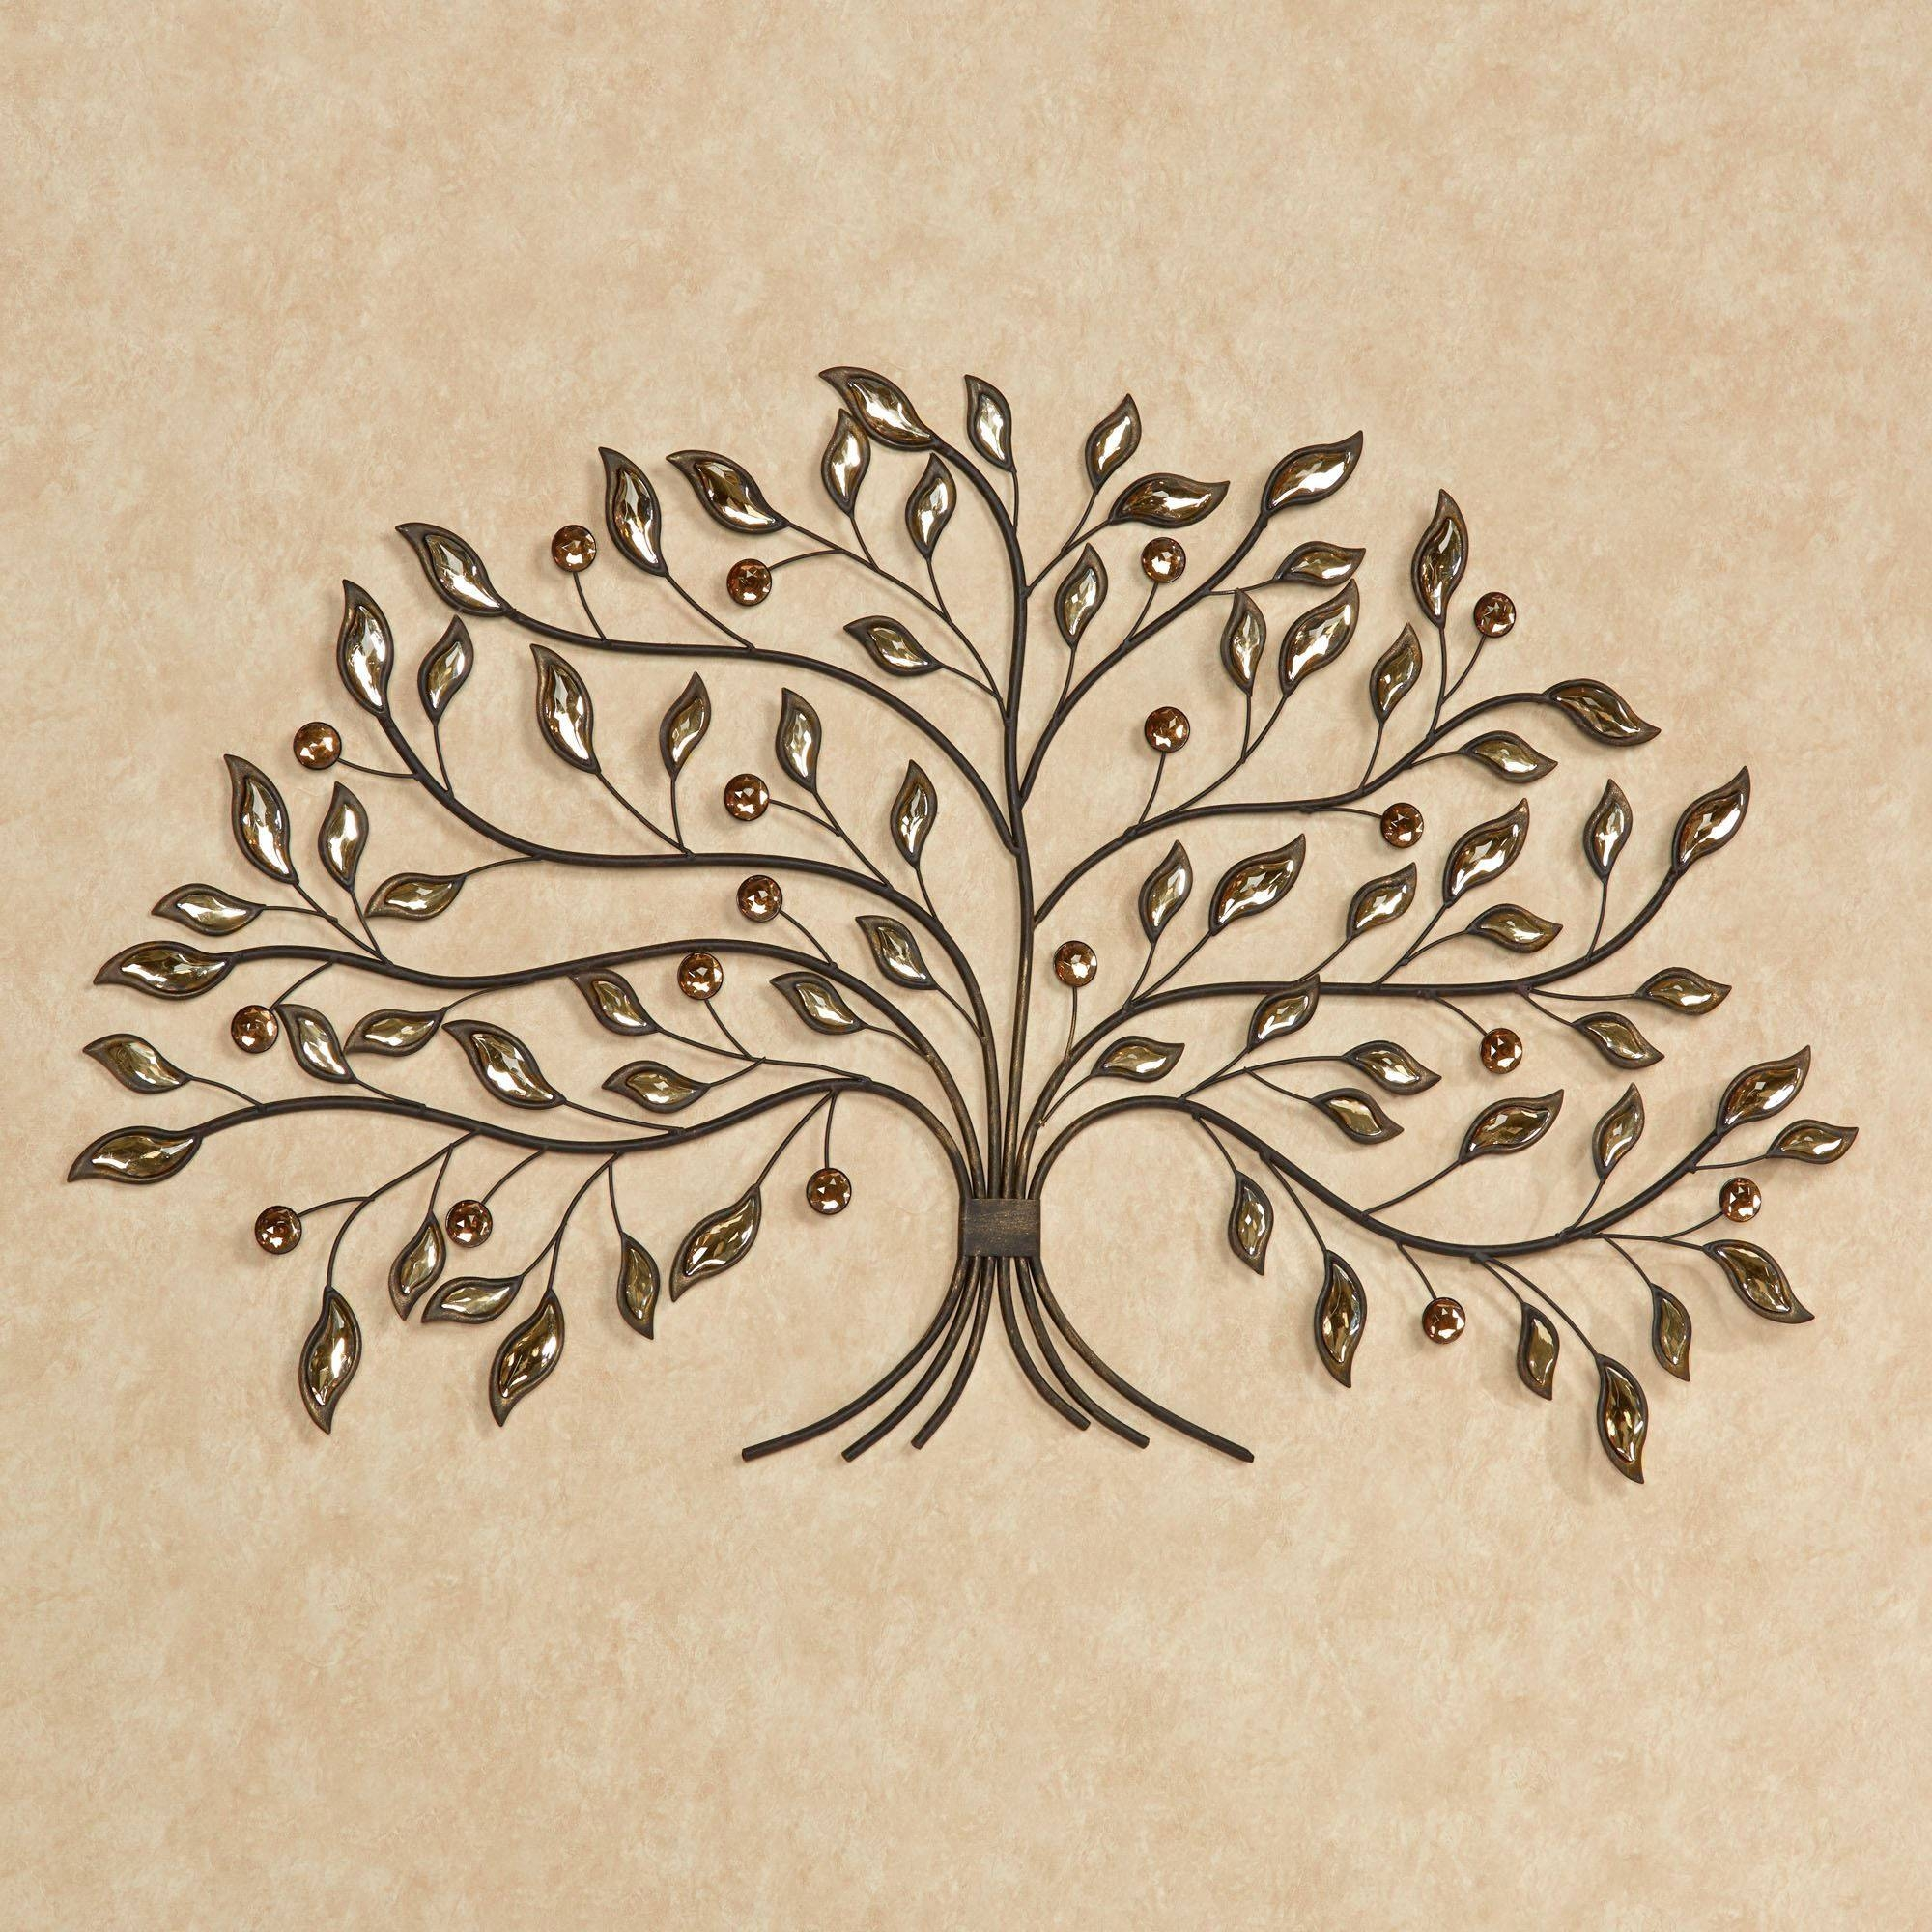 Alexandra Vining Gem Tree Metal Wall Art Regarding Most Popular Branches Metal Wall Art (View 2 of 20)